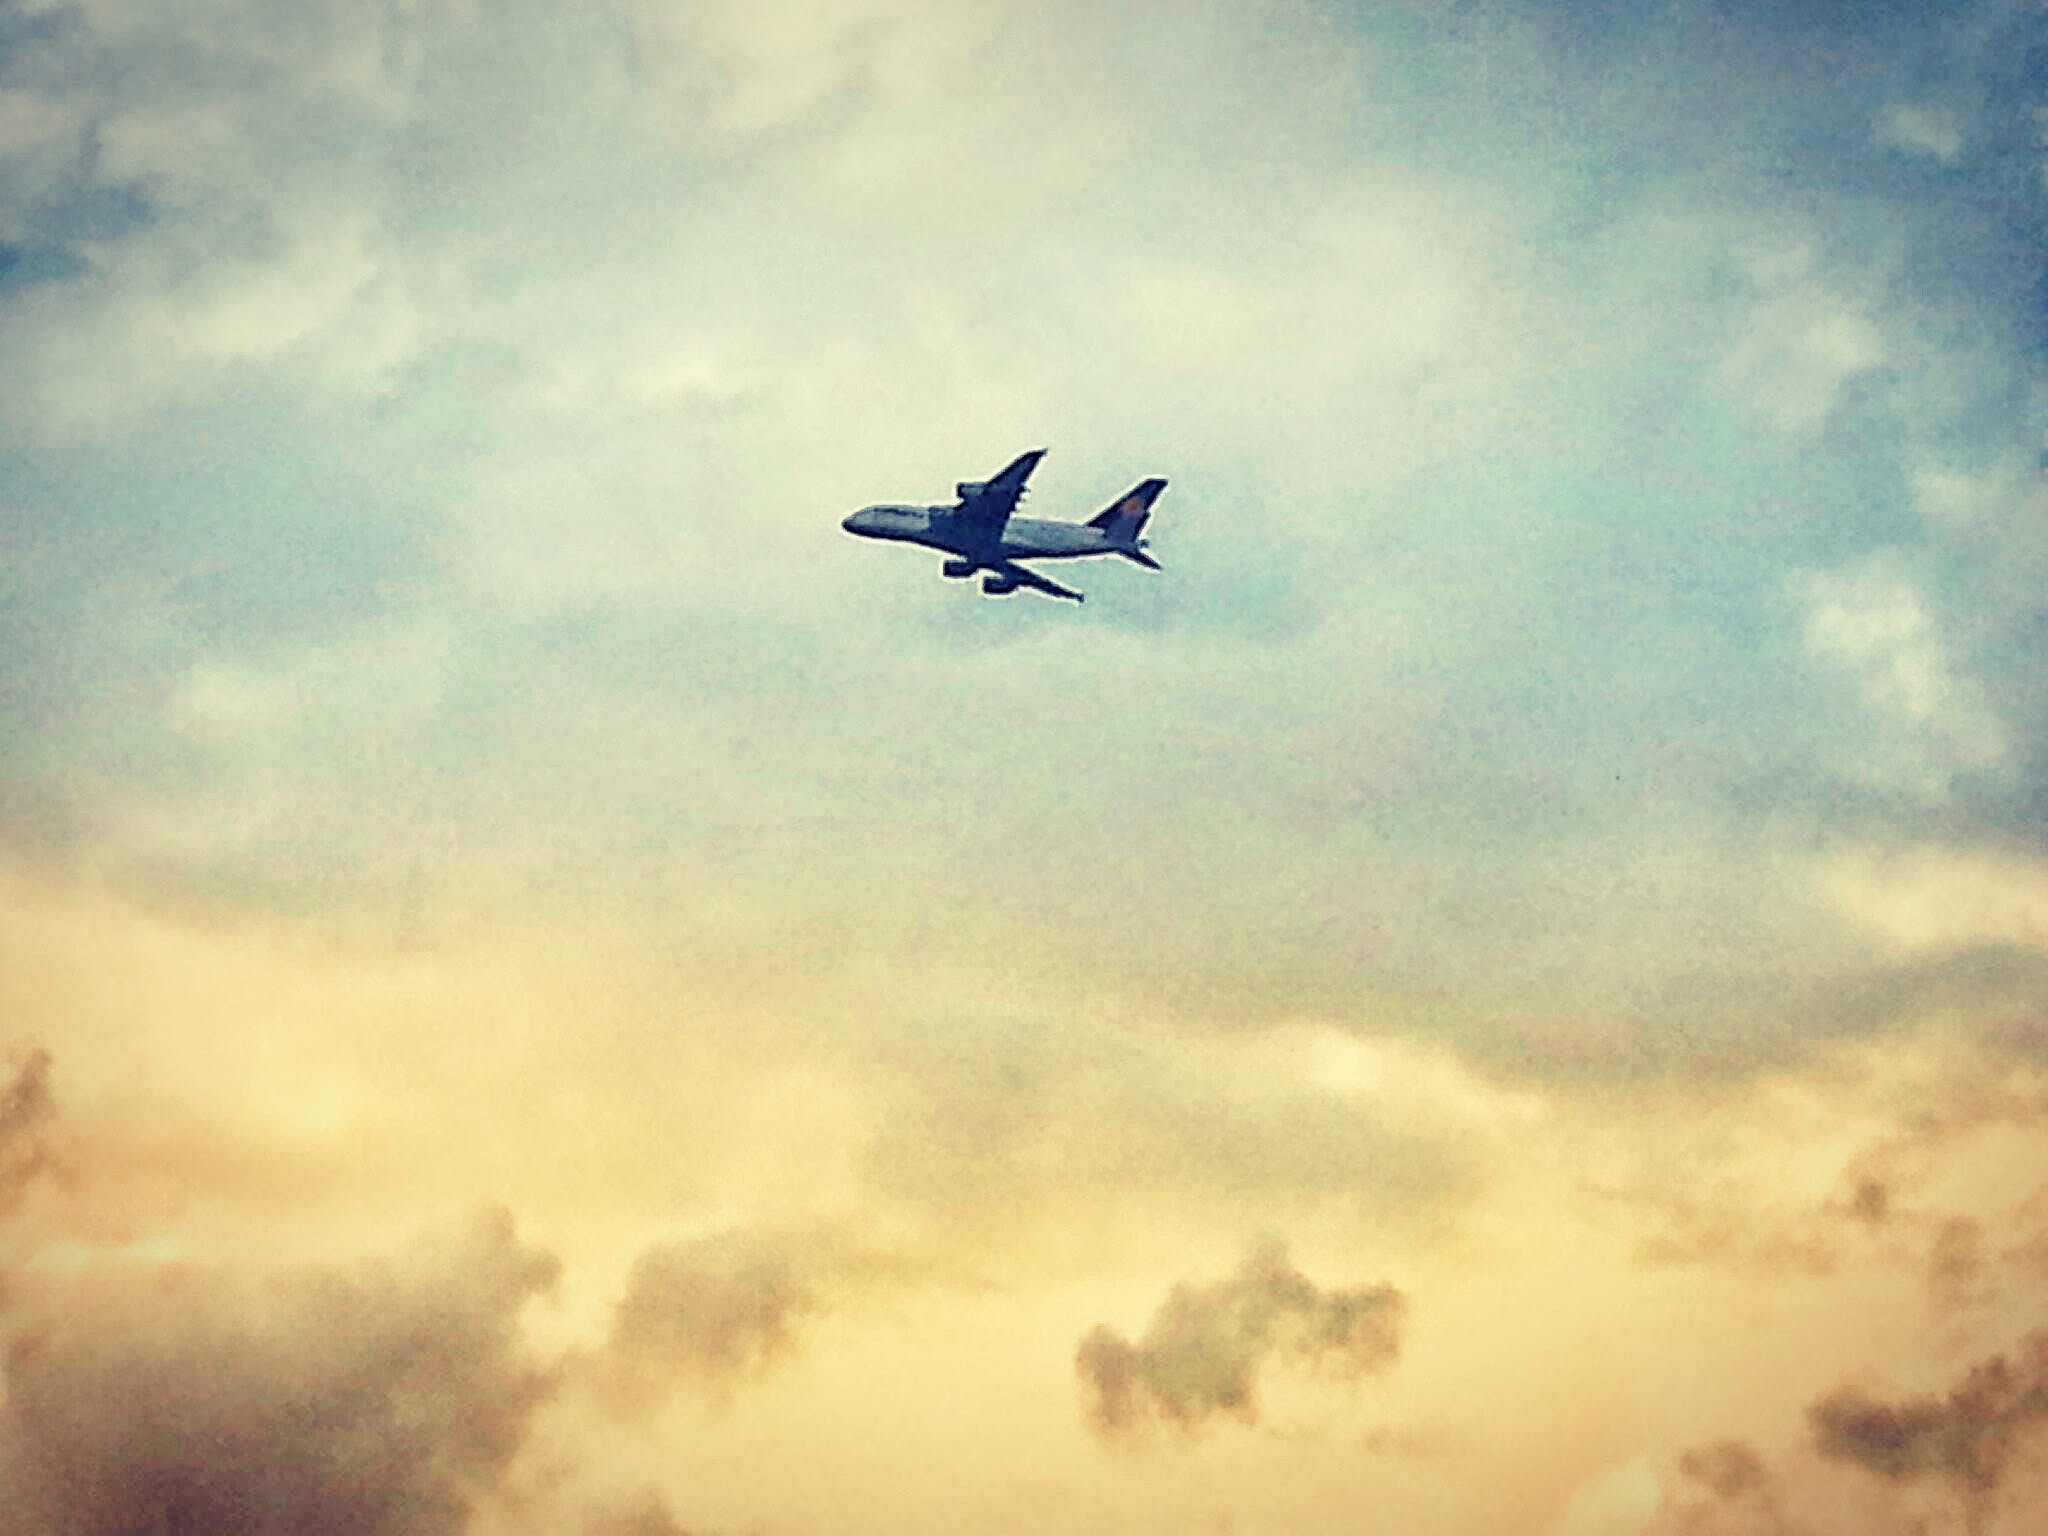 Free stock photo of airplane, cloudy, cloudy sky, flight